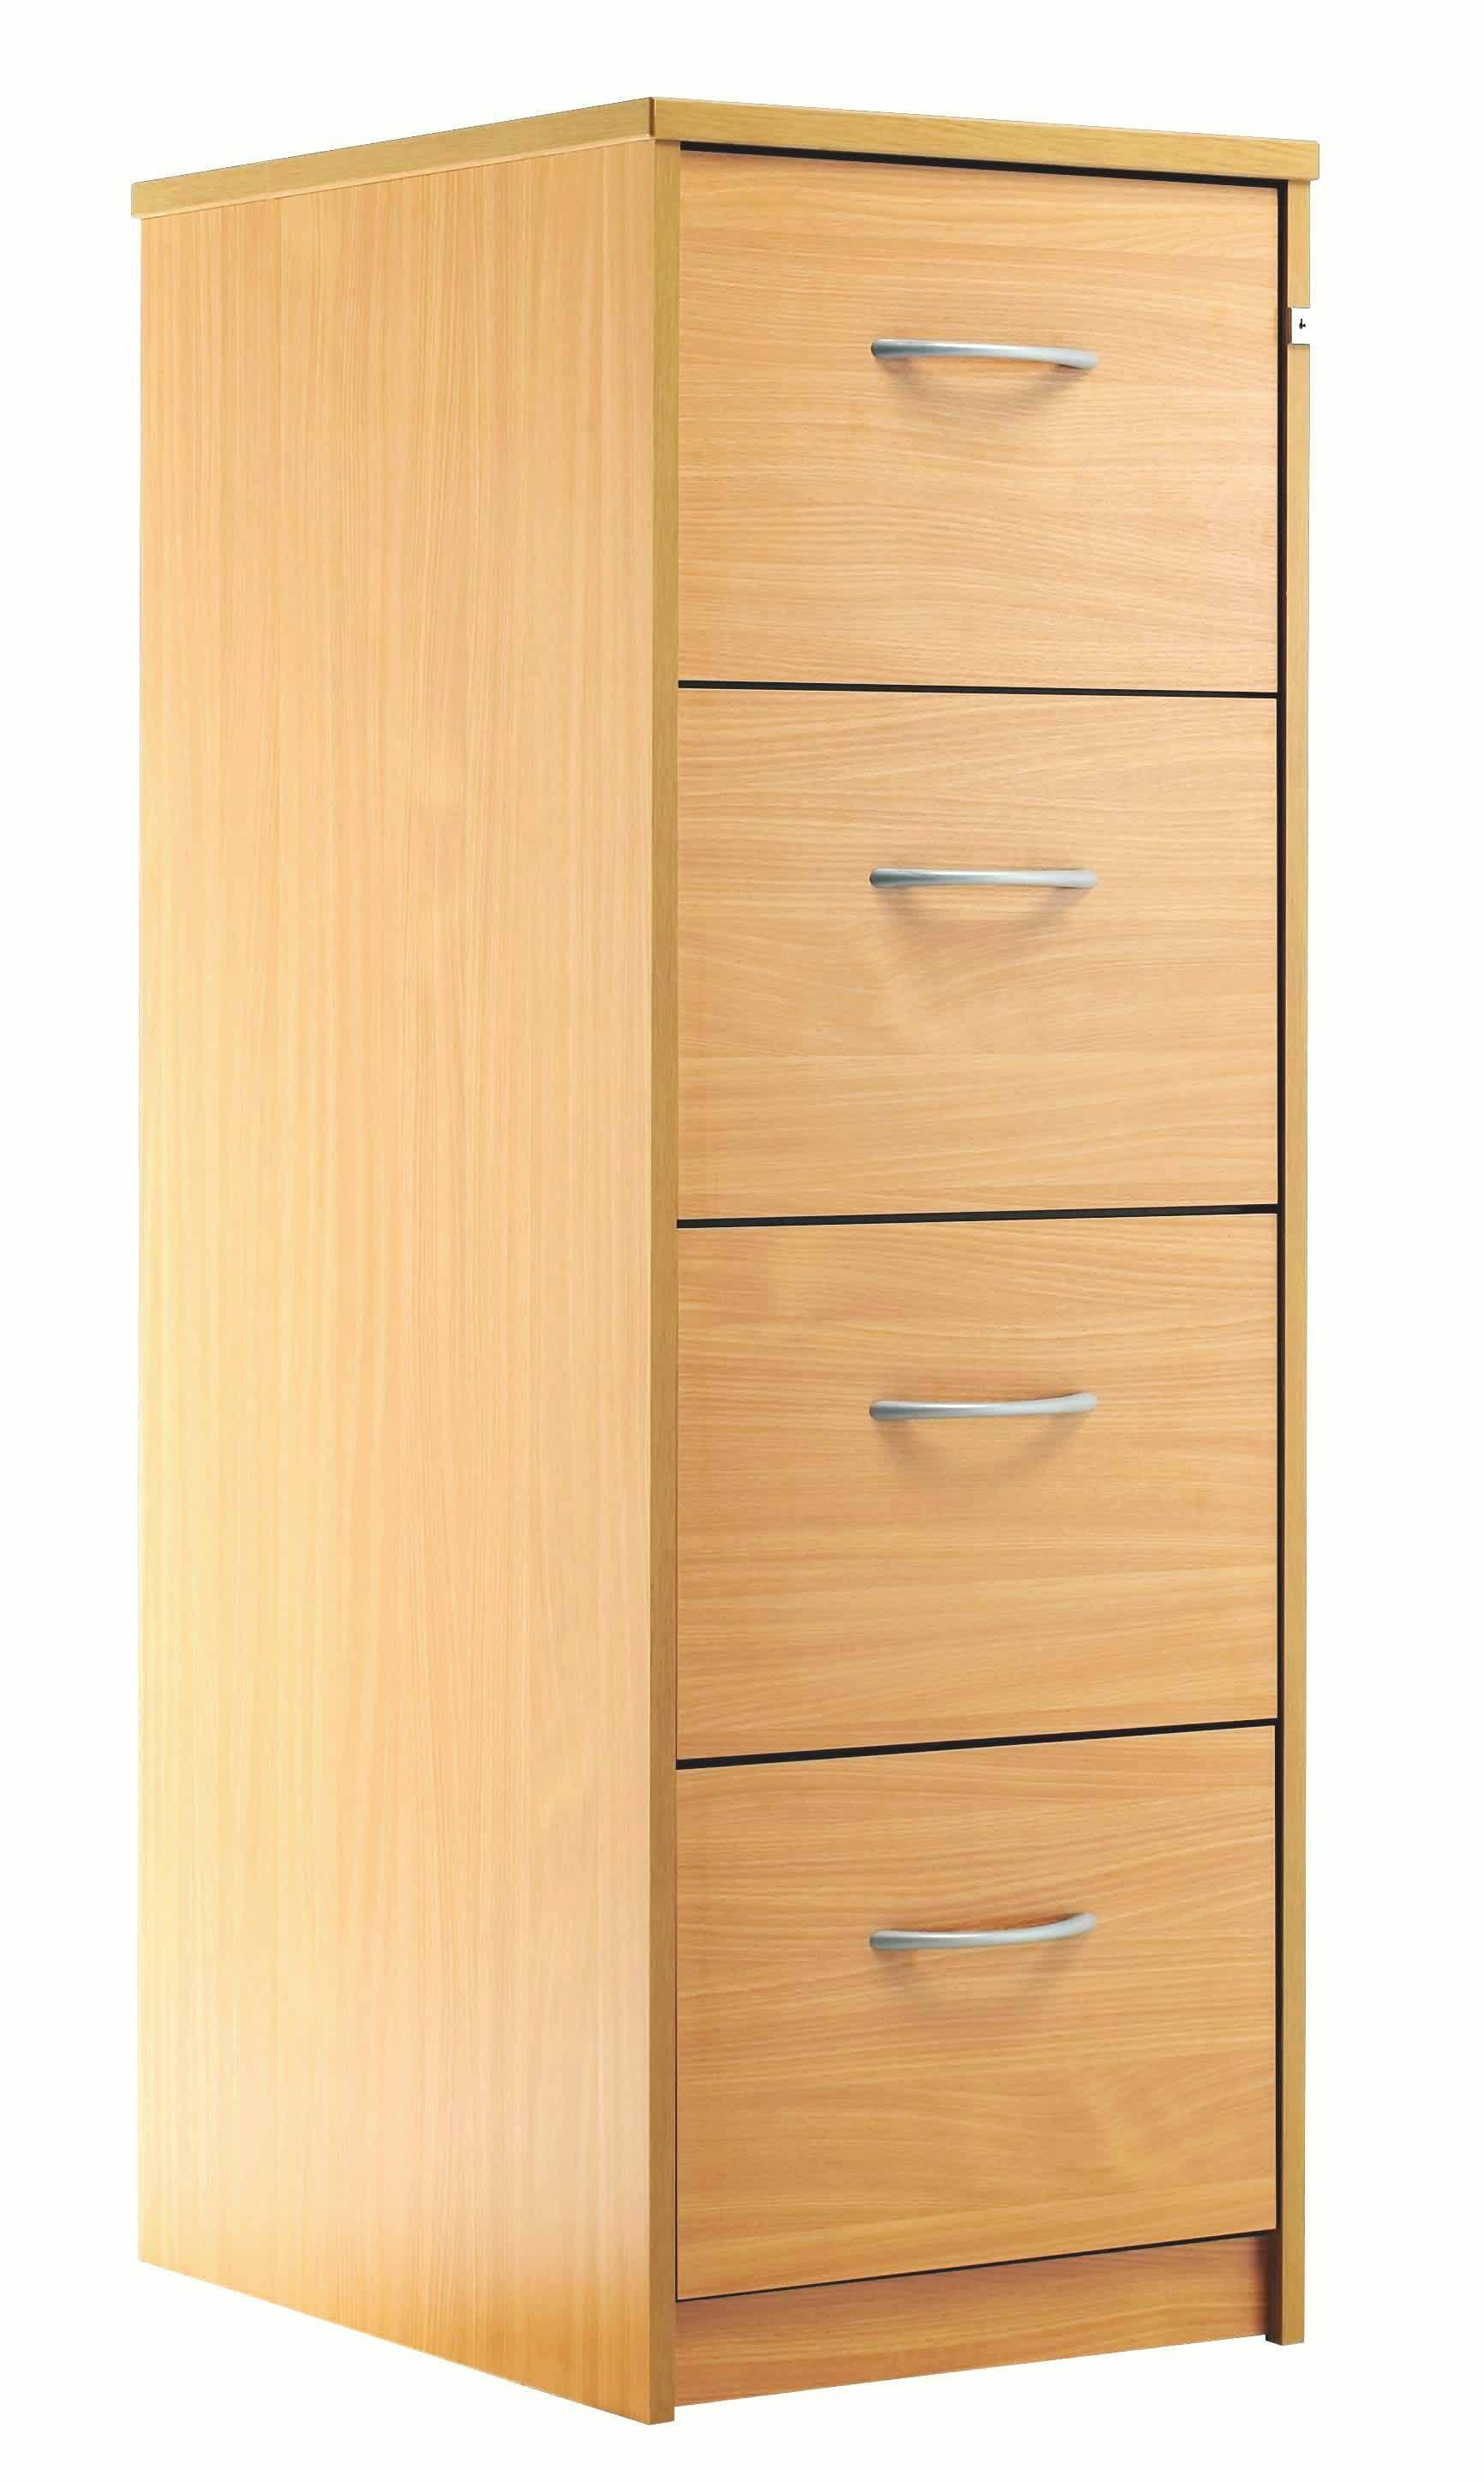 cool wood file cabinet ikea that will keep your important